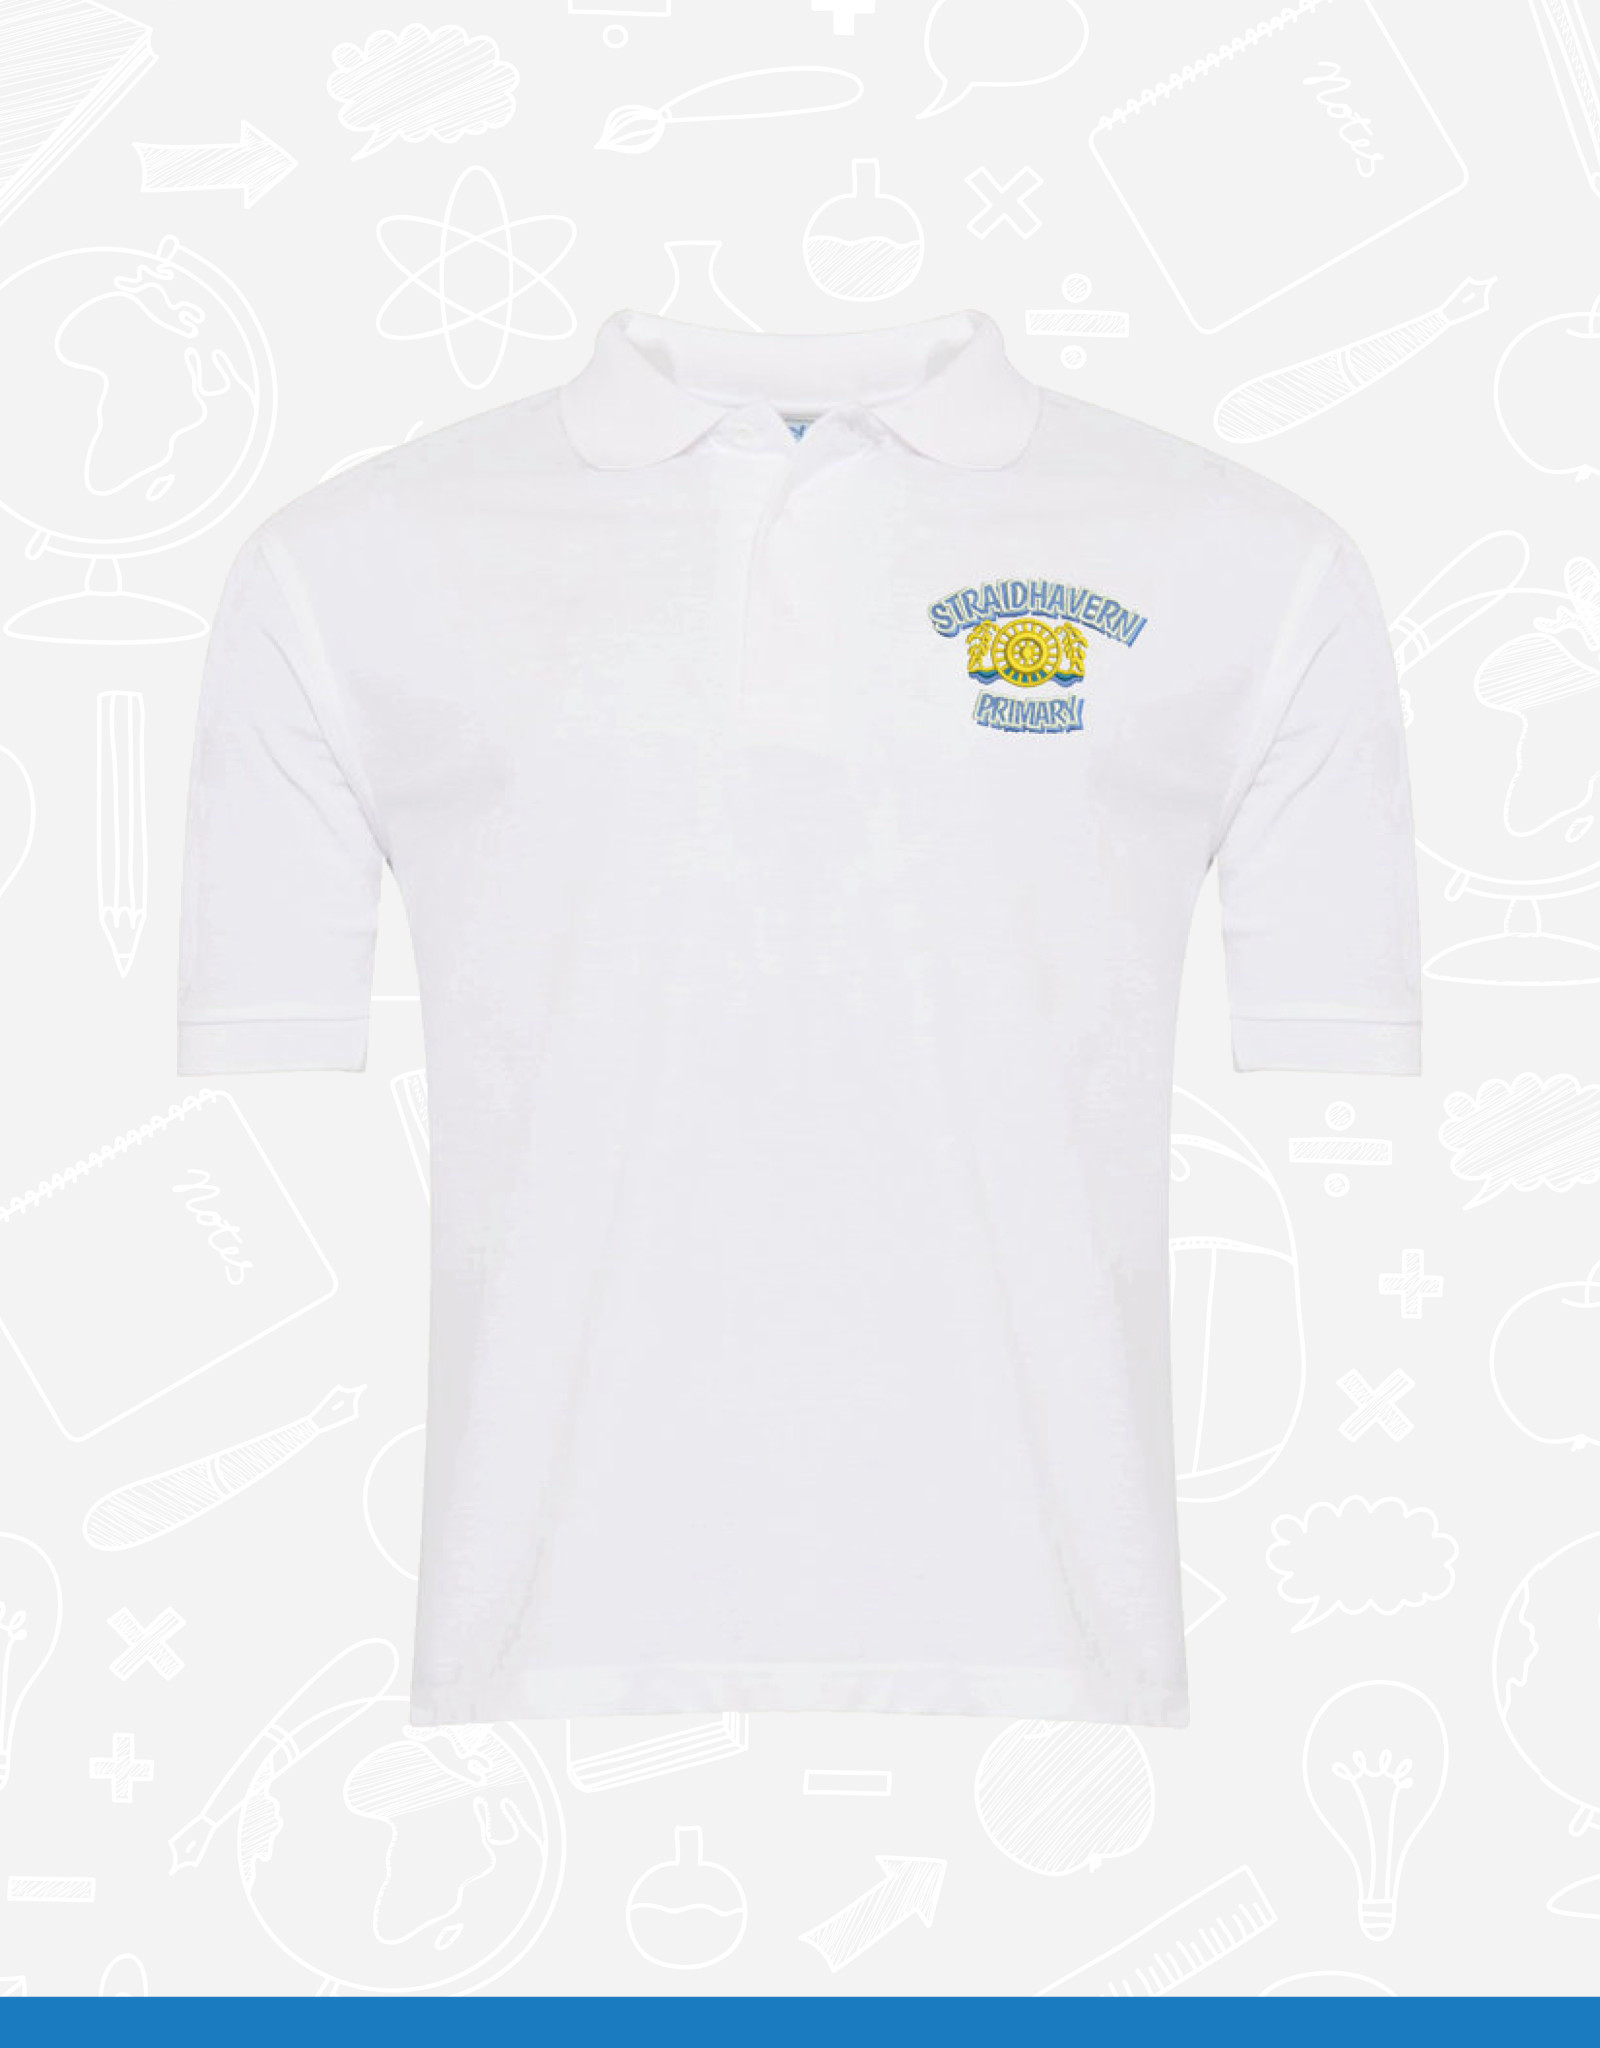 Banner Straidhavern Primary Polo Shirt (3PP)